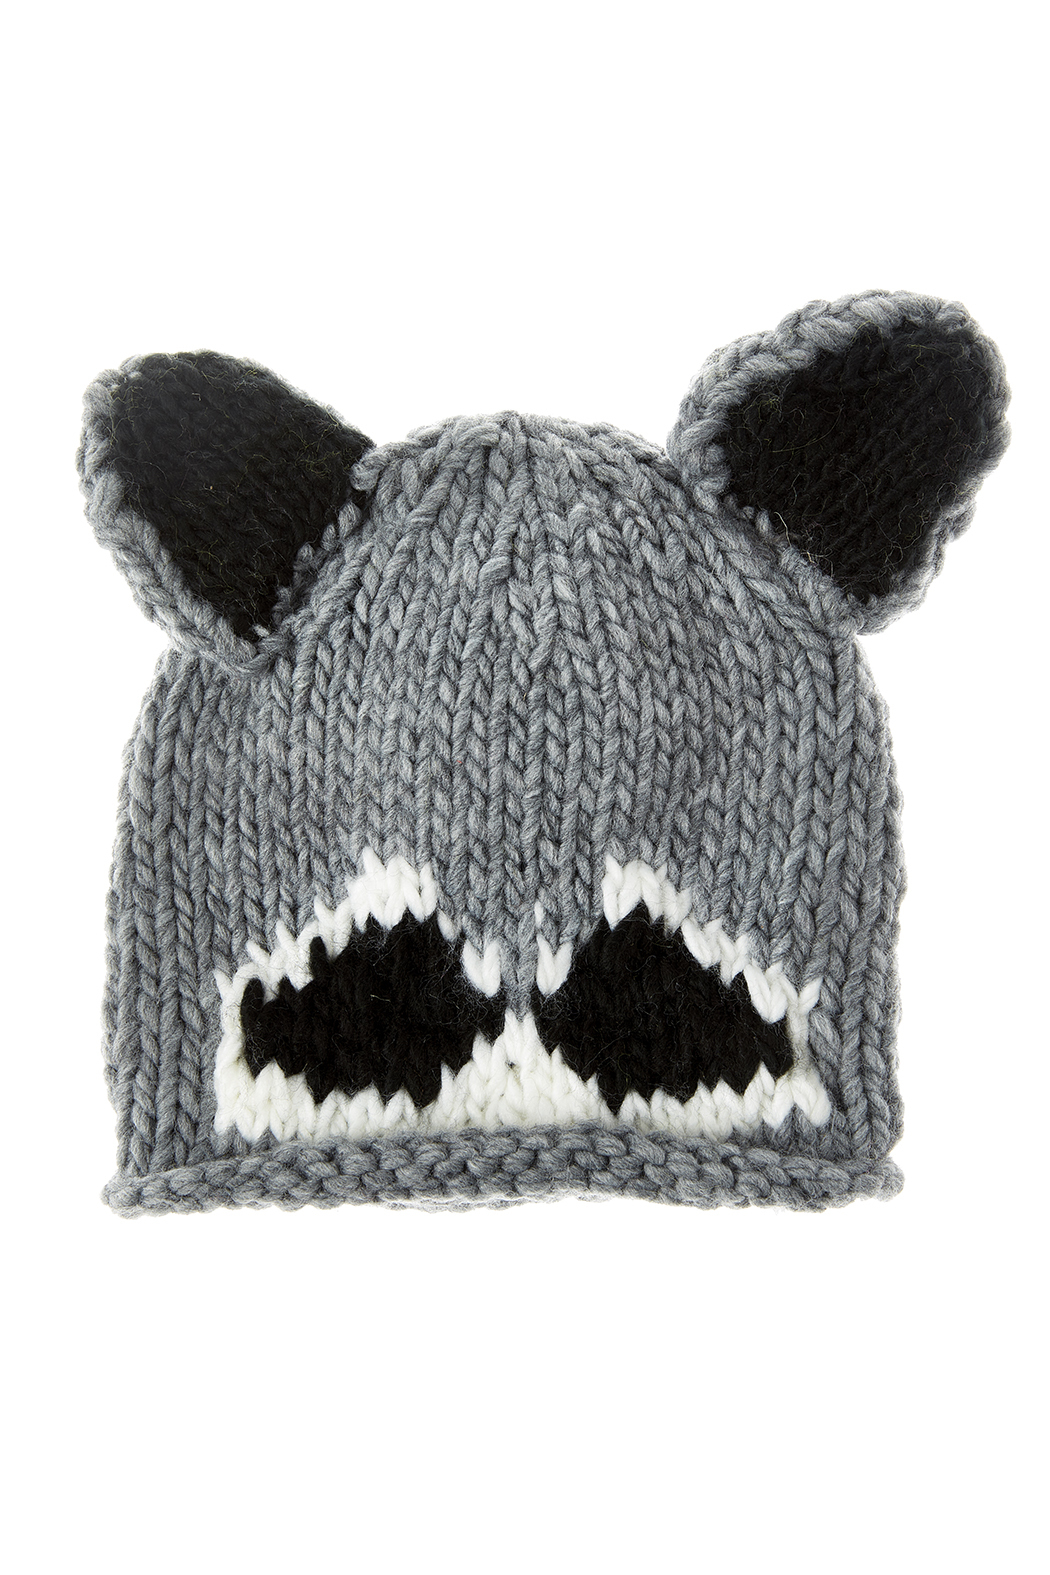 The Blueberry Hill Baby Raccoon Hat from Fort Greene by Fort Greene ... 7584fb875d3